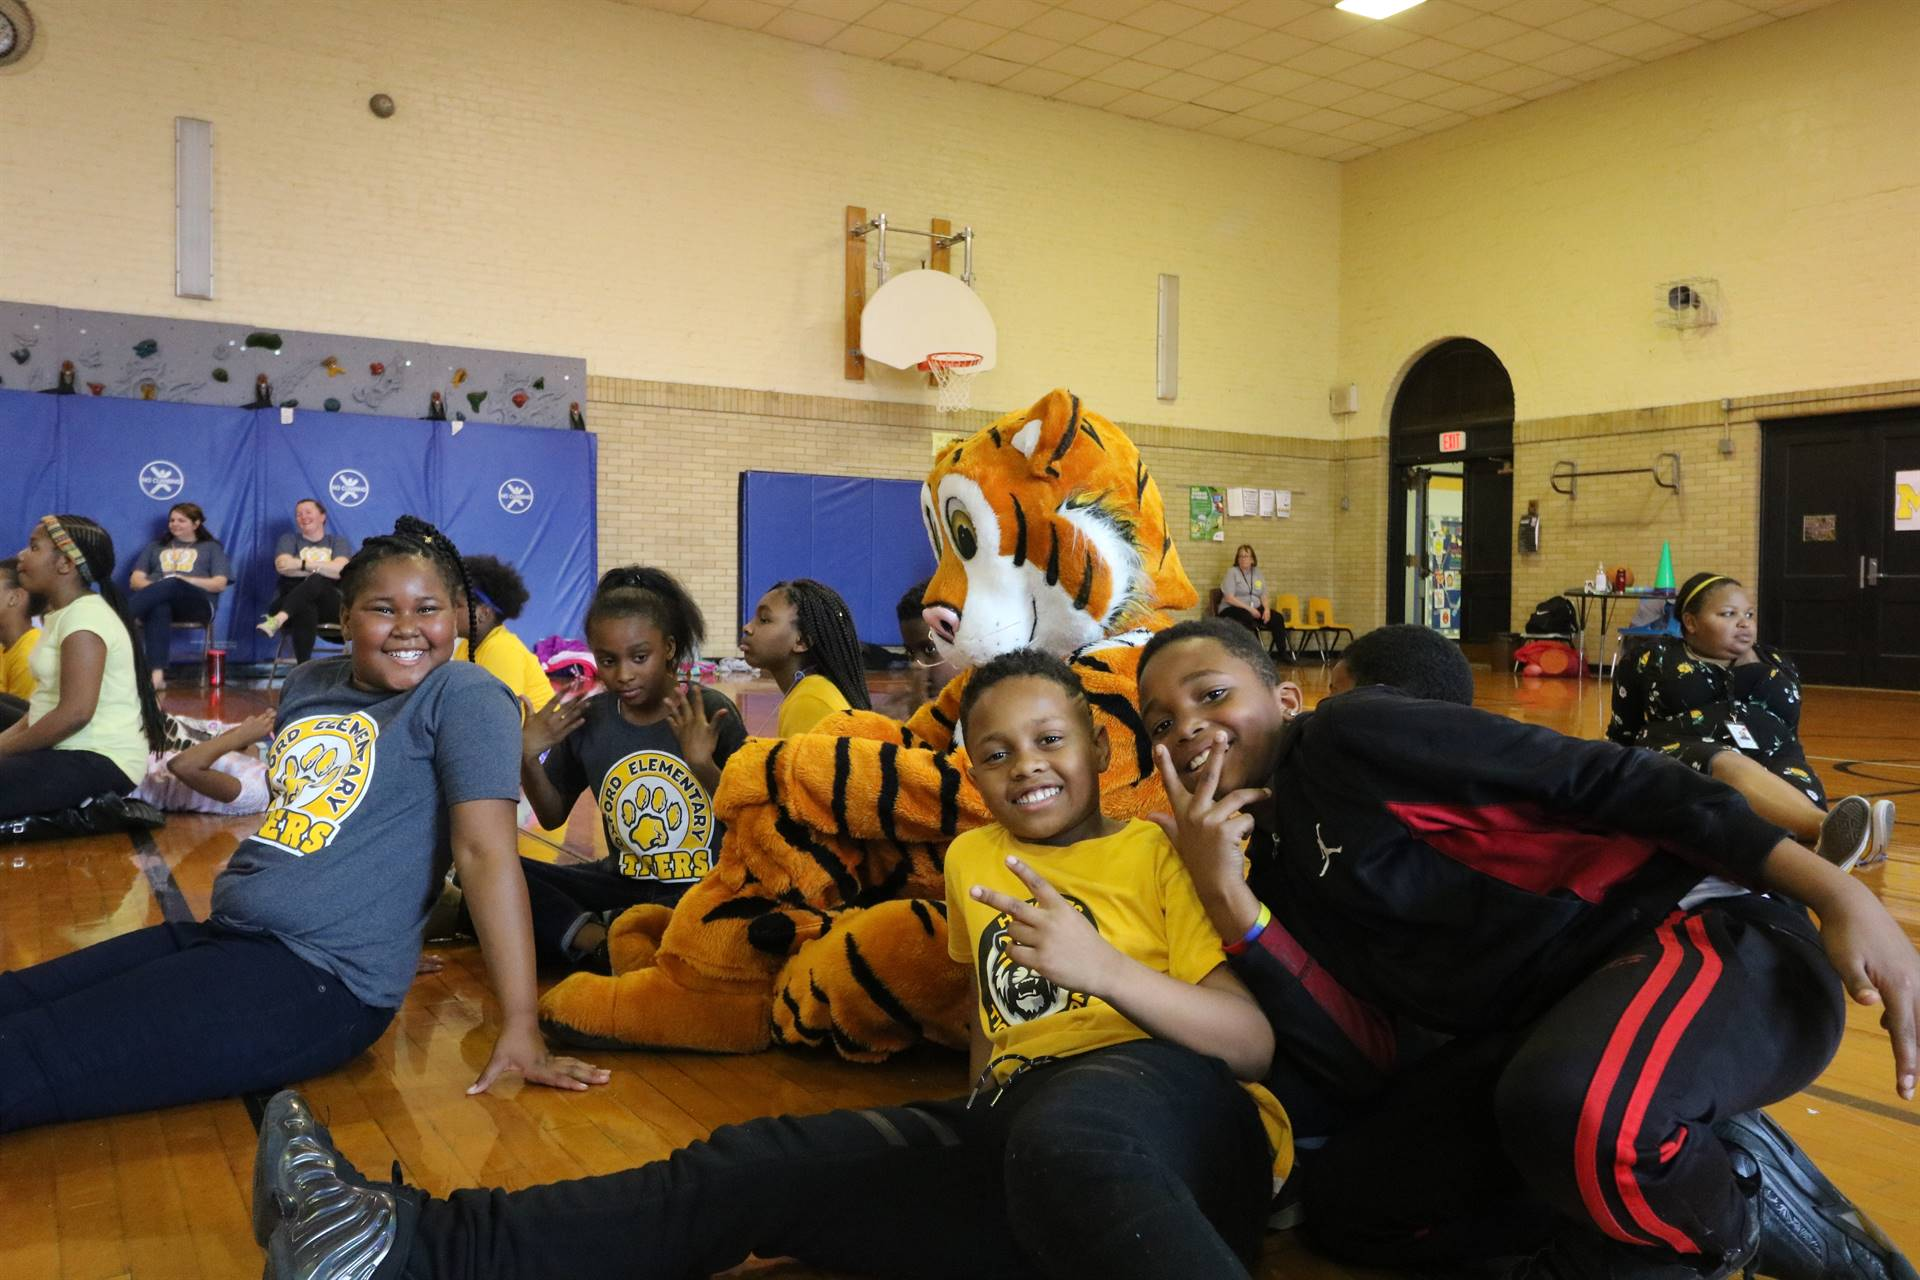 Students sit with TJ the tiger